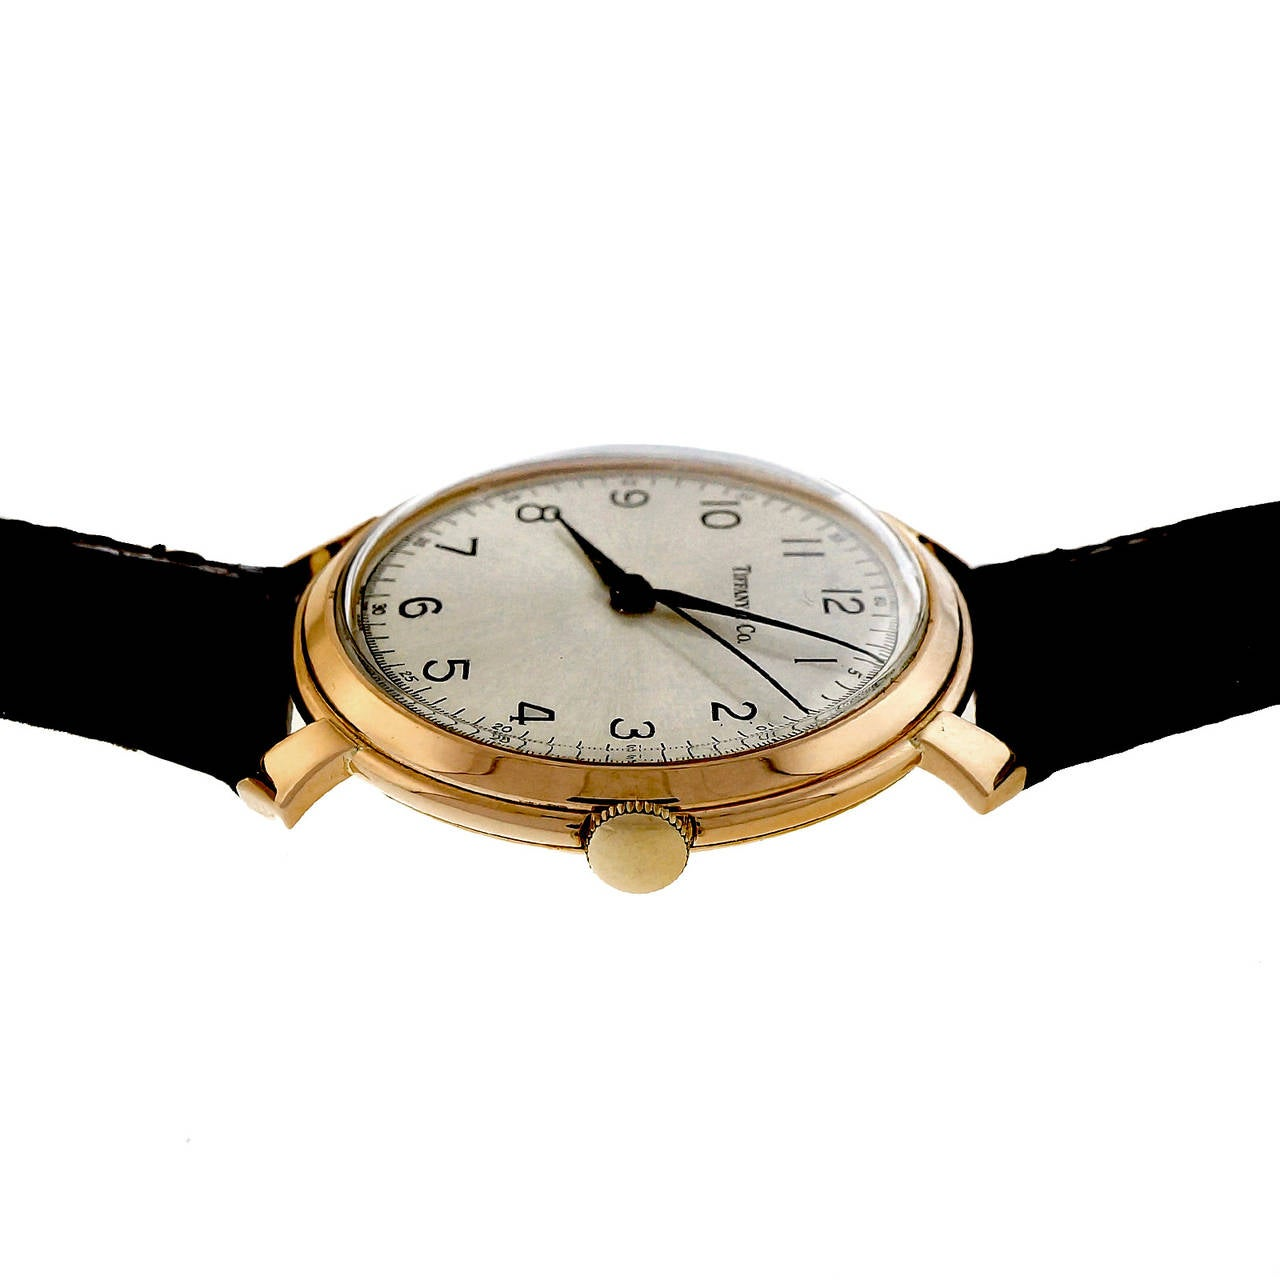 IWC Rose Gold Wristwatch Retailed by Tiffany & Co. For Sale 1